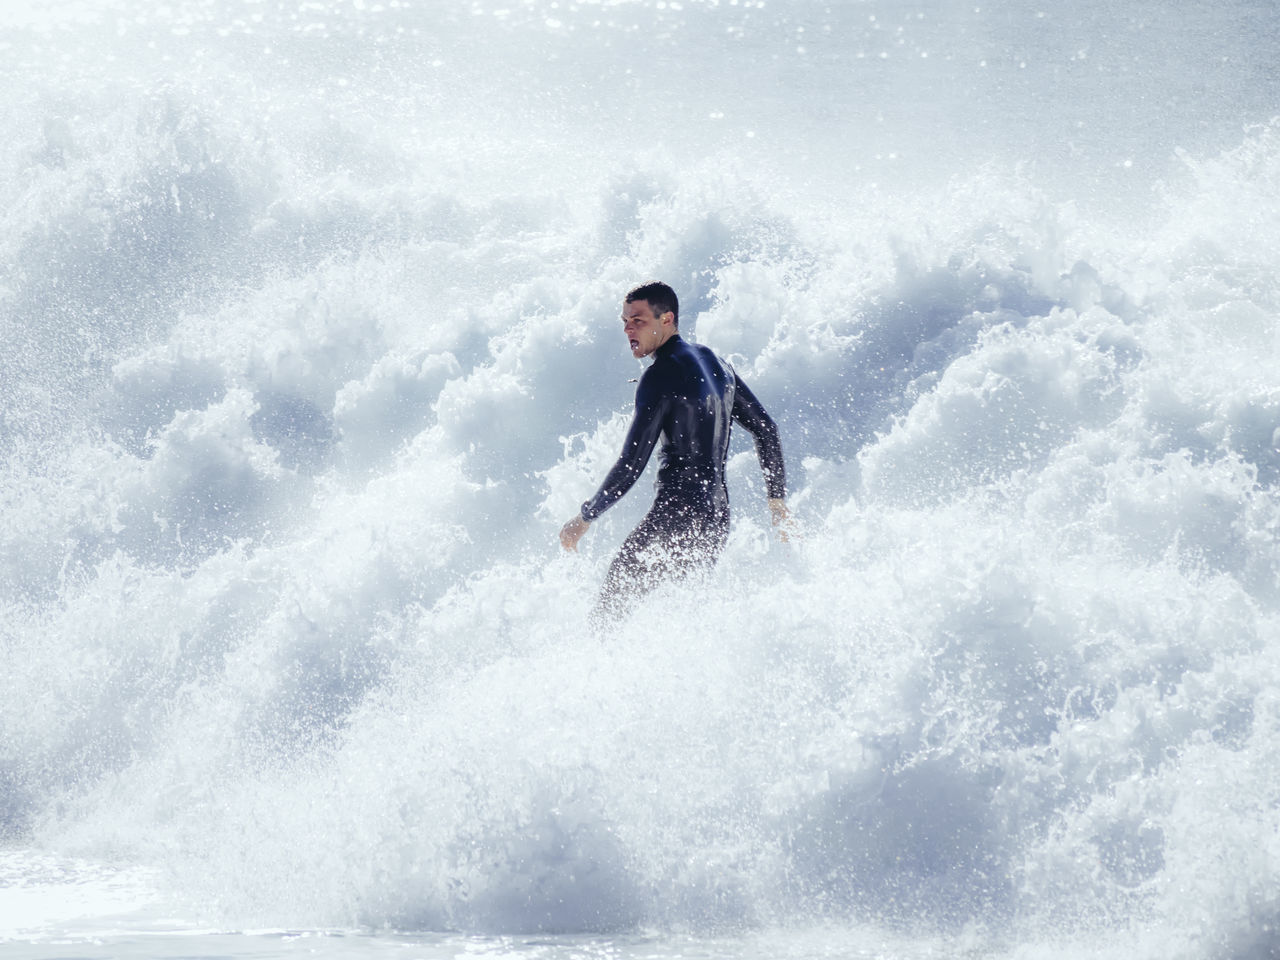 Surfer Froth Wave Wetsuit HERO White White Water Bright